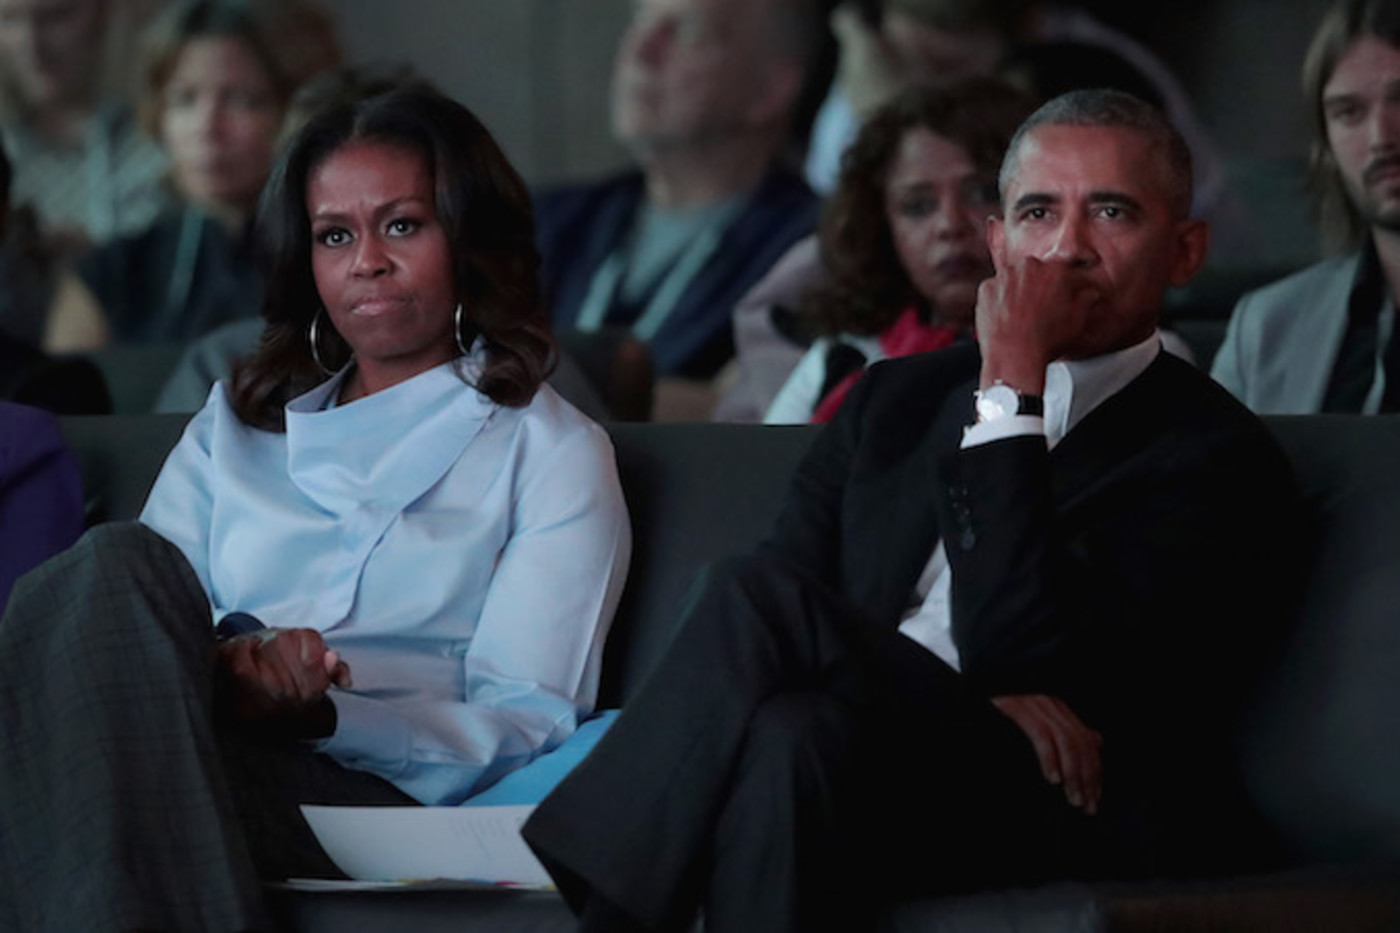 The Obamas Sitting During Conference